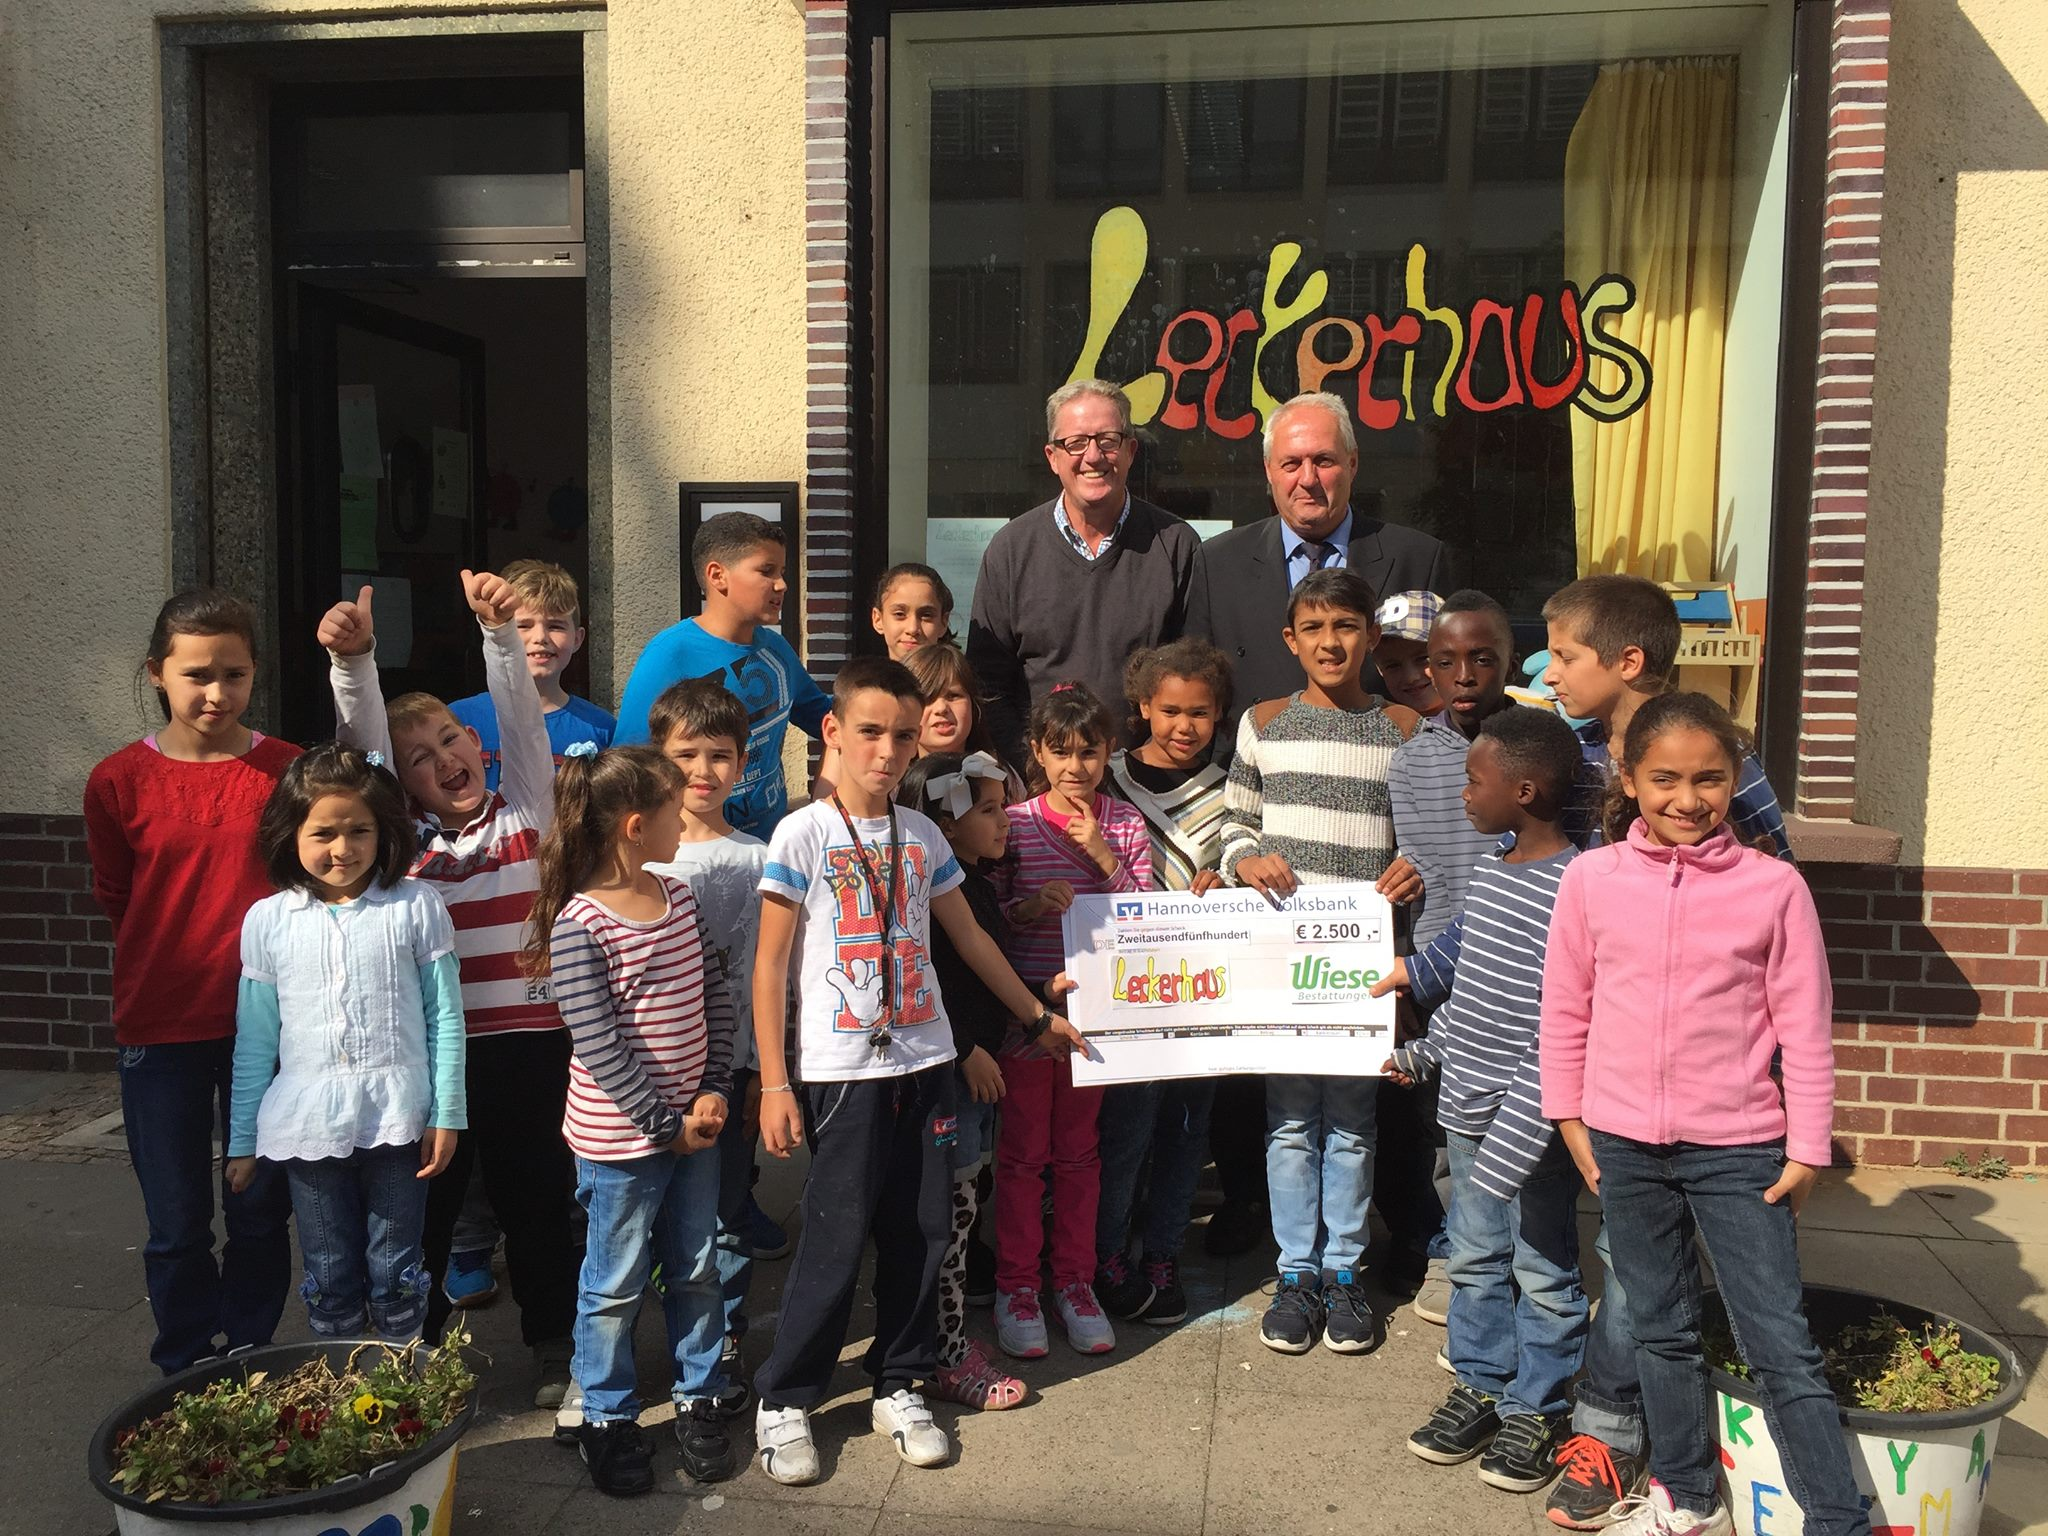 Leckerhaus Bestattungsinstitut Wiese Business for Kids e.V.